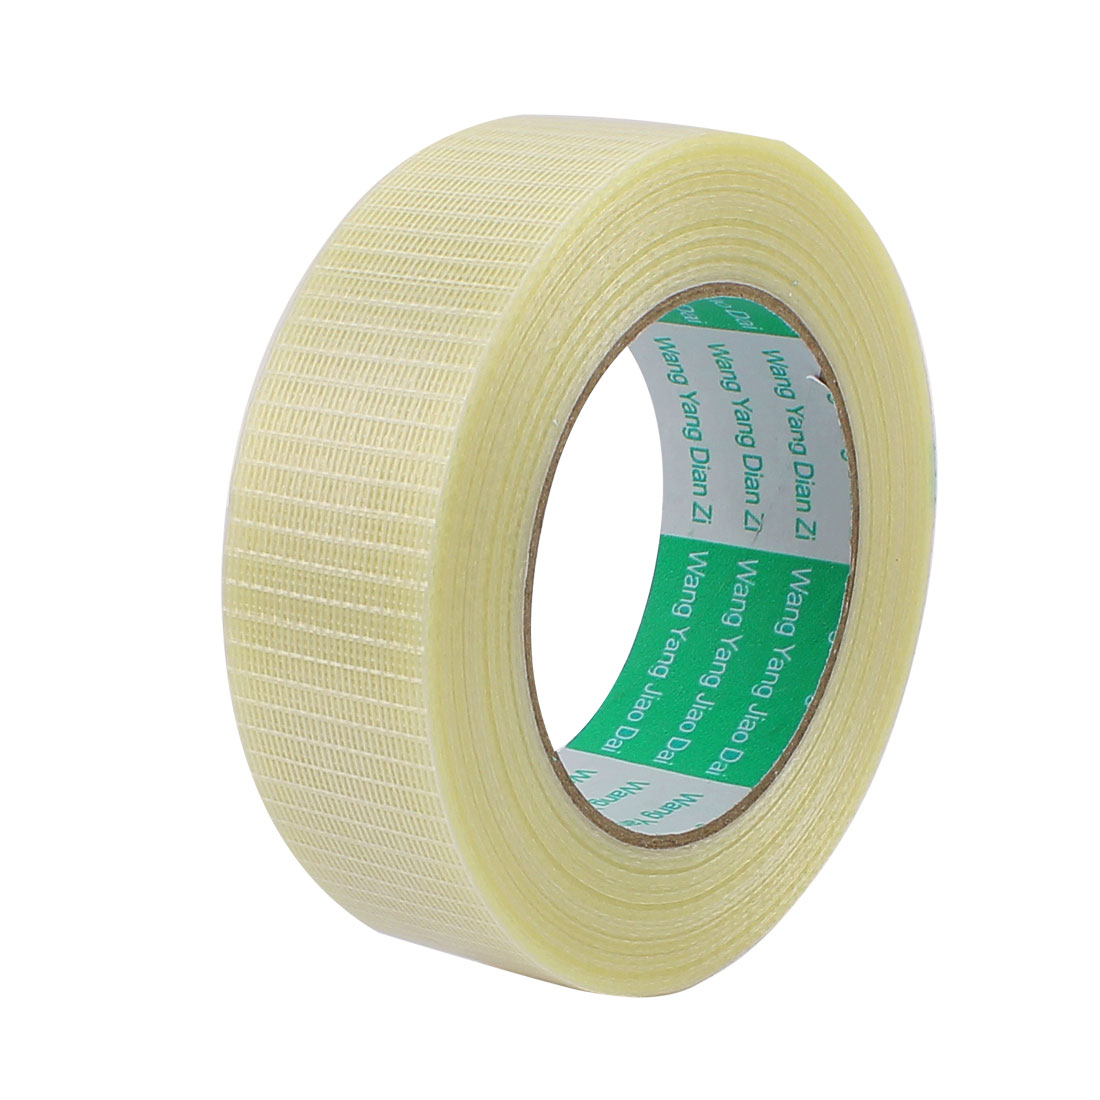 35mm Height 50M Length Long Adhesive Insulating Grid Glass Fiber Tape Roll